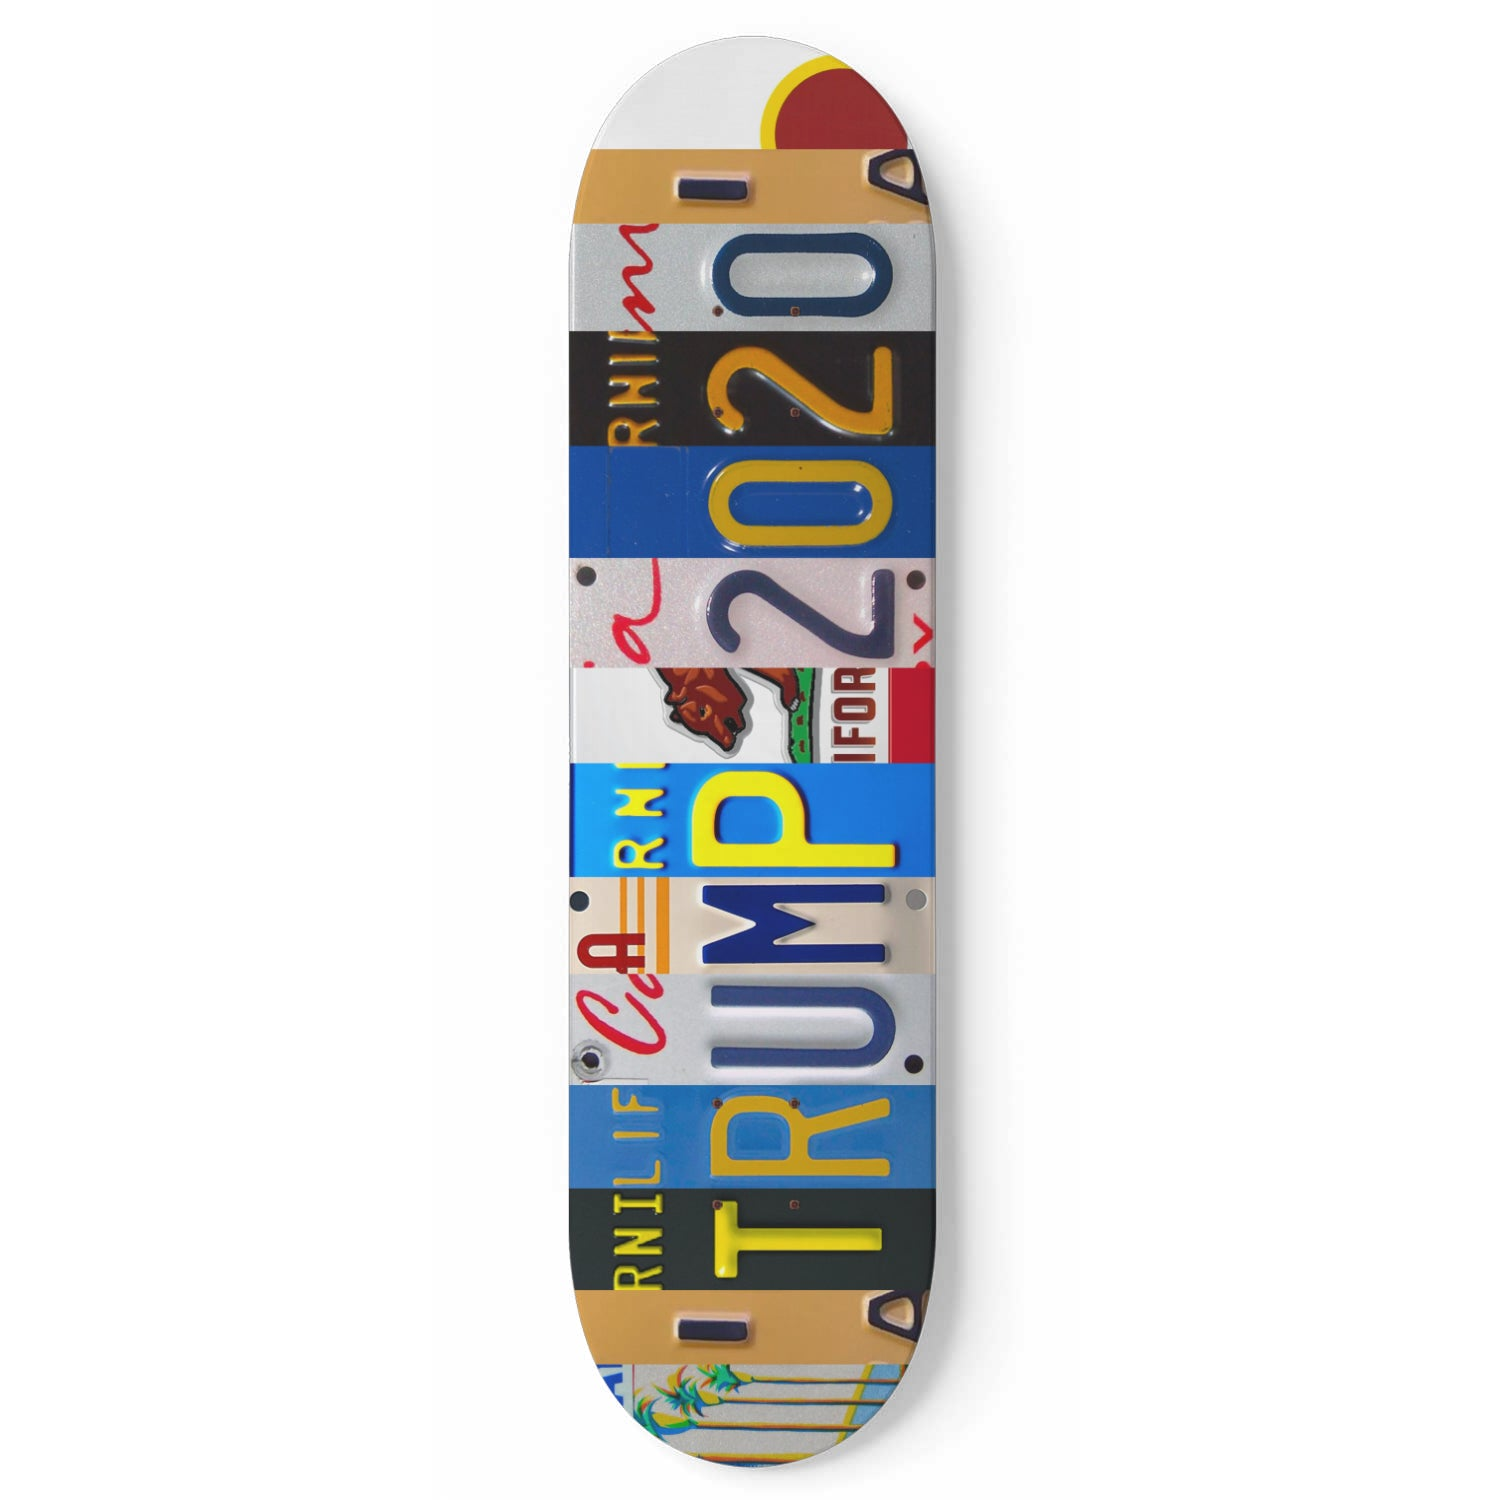 California License Plate Design Trump 2020 Skateboard